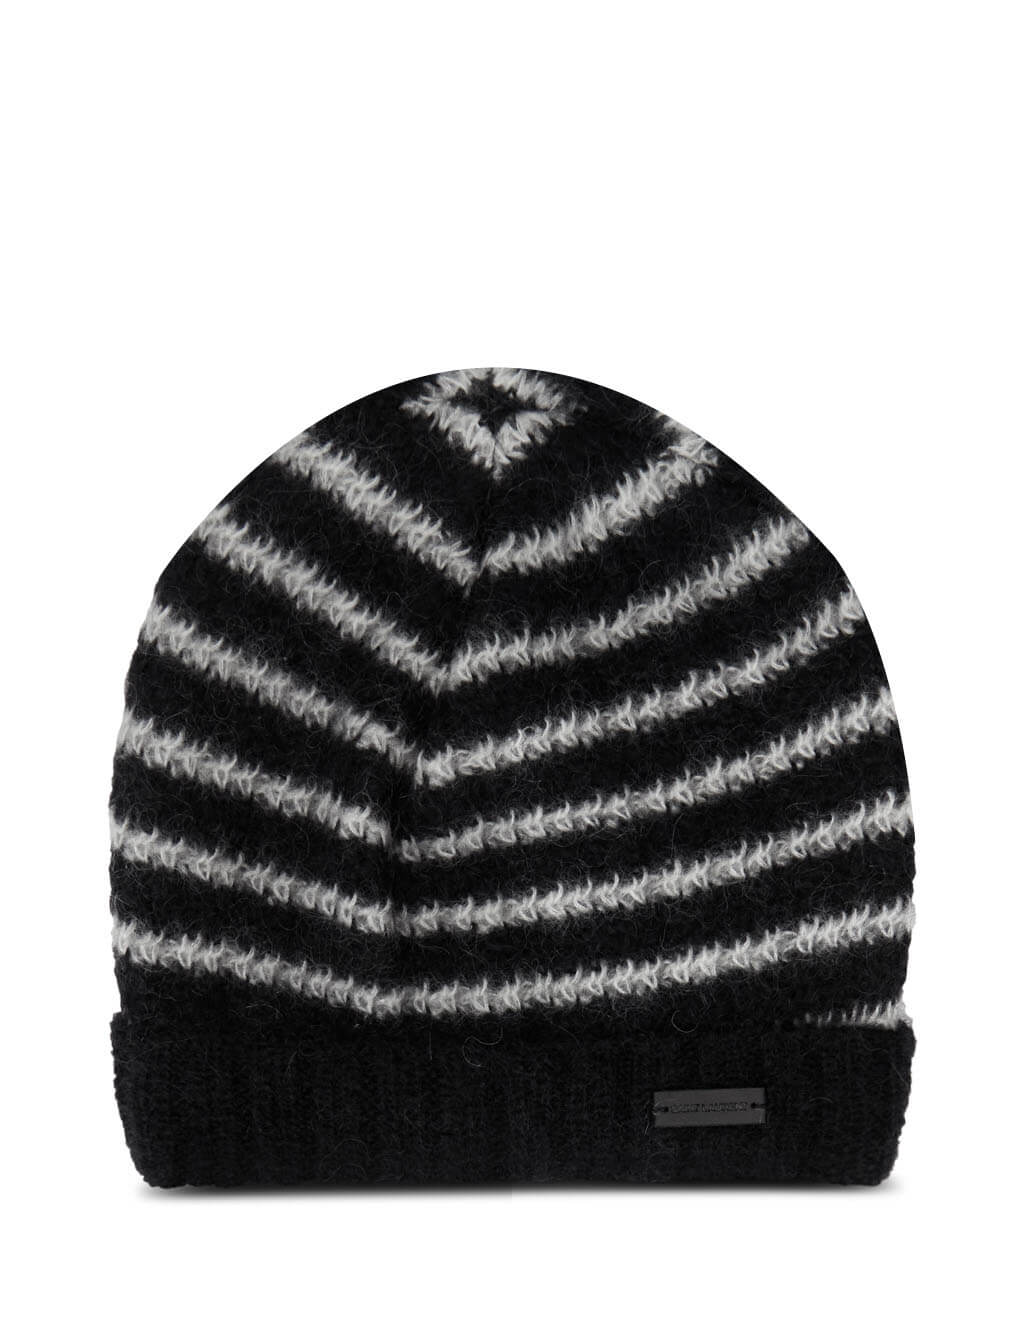 Men's Saint Laurent Sailor Knit Hat in Black. 6327254YF721078